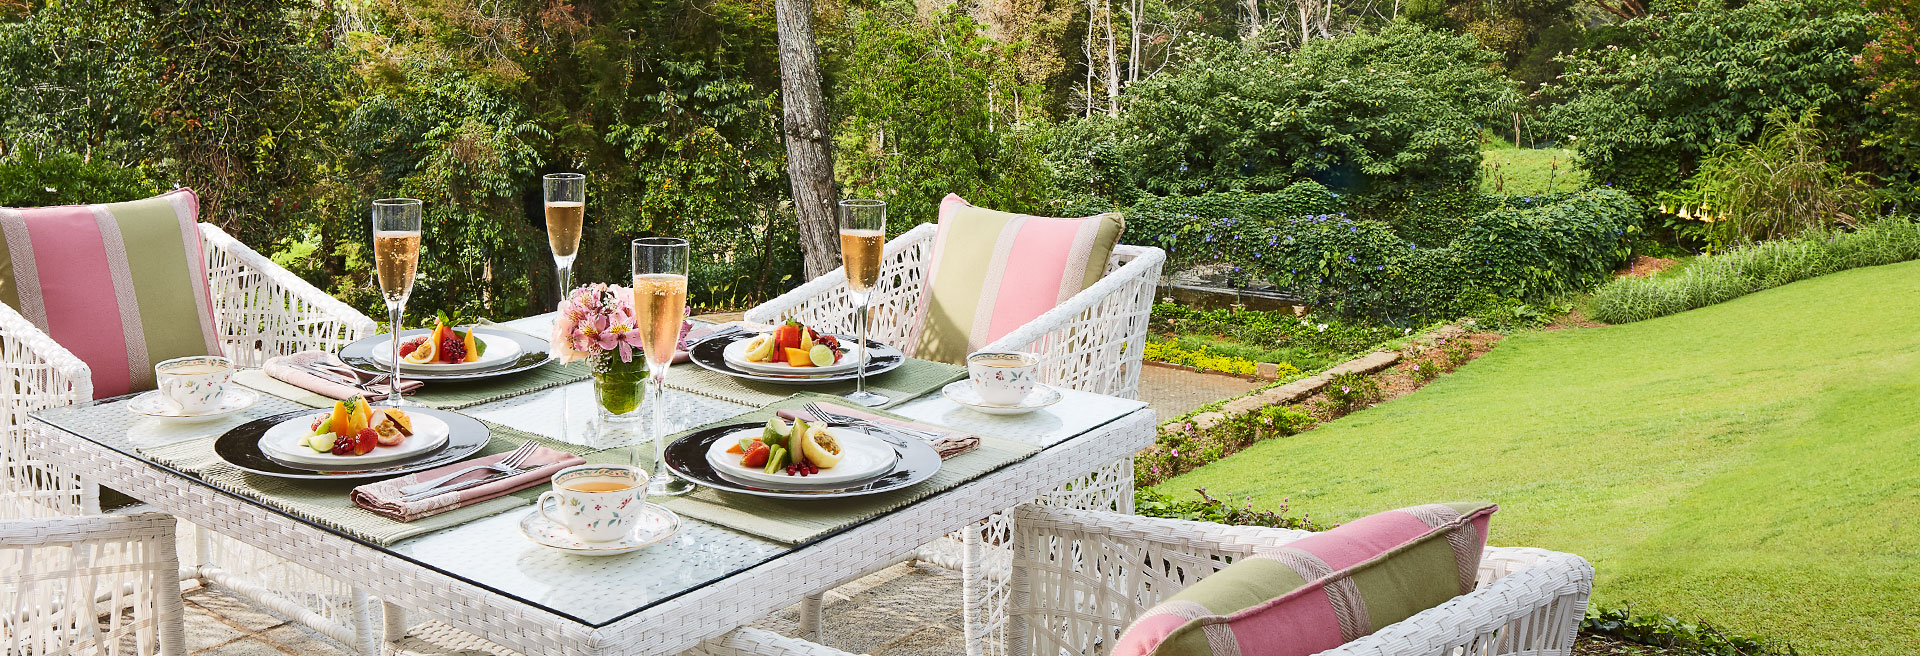 Outdoor dining overlooking the mountain